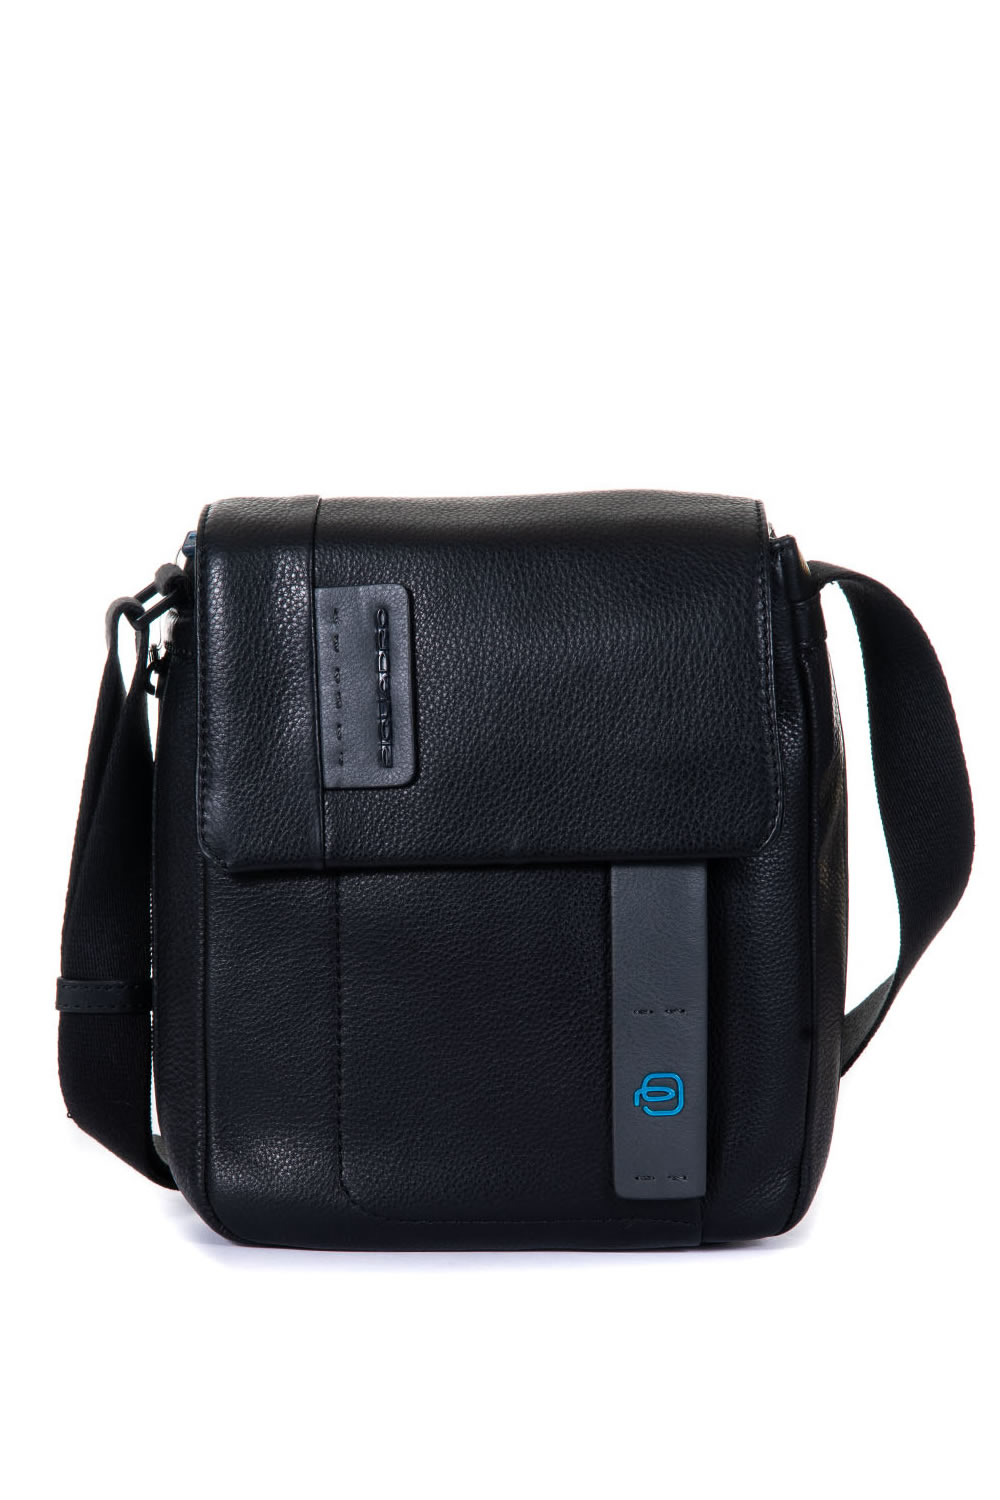 5ac7a88c0c27 Leather shoulder bag Piquadro Colore  nero. Product  CA4112P15N  Availability  In stock